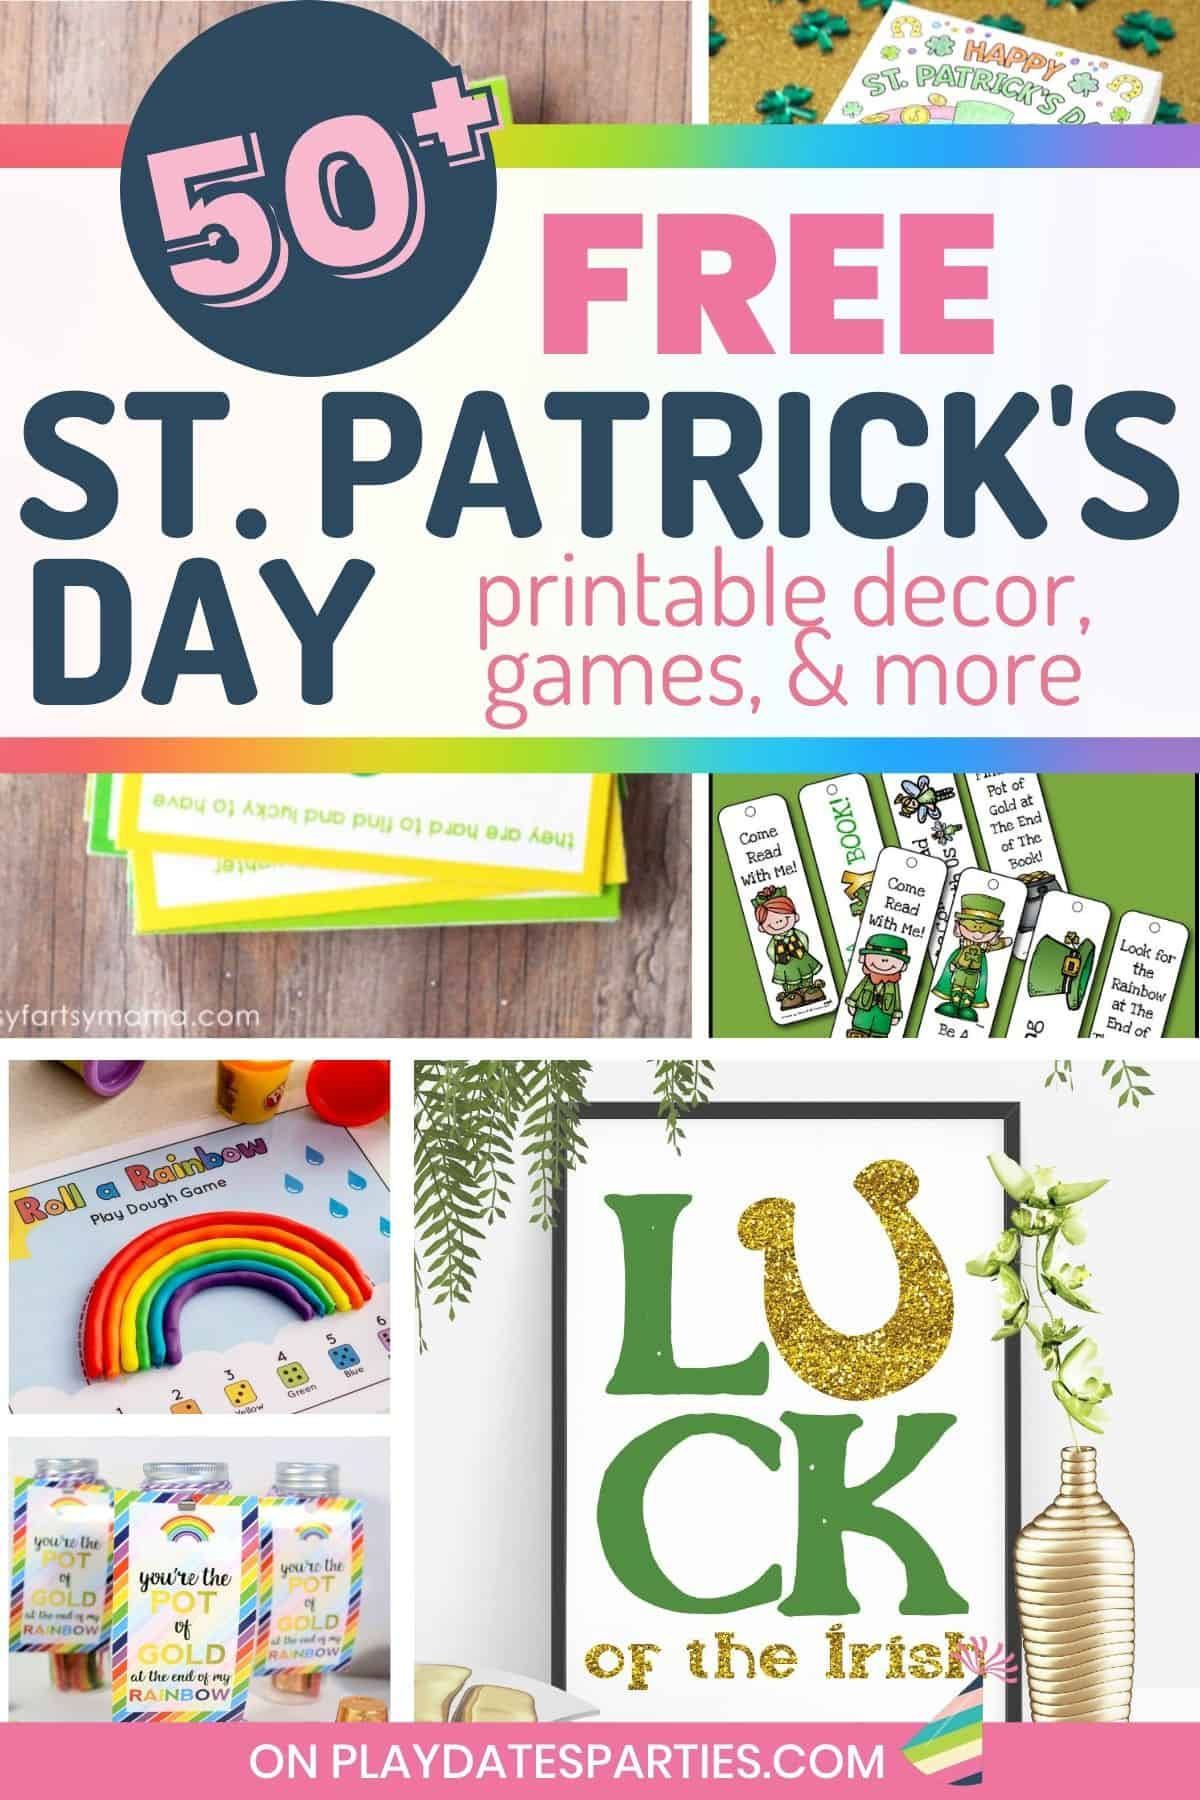 collage of St. Patrick's Day printables with text overlay 50+ free St. Patrick's Day printable decor, games, and more